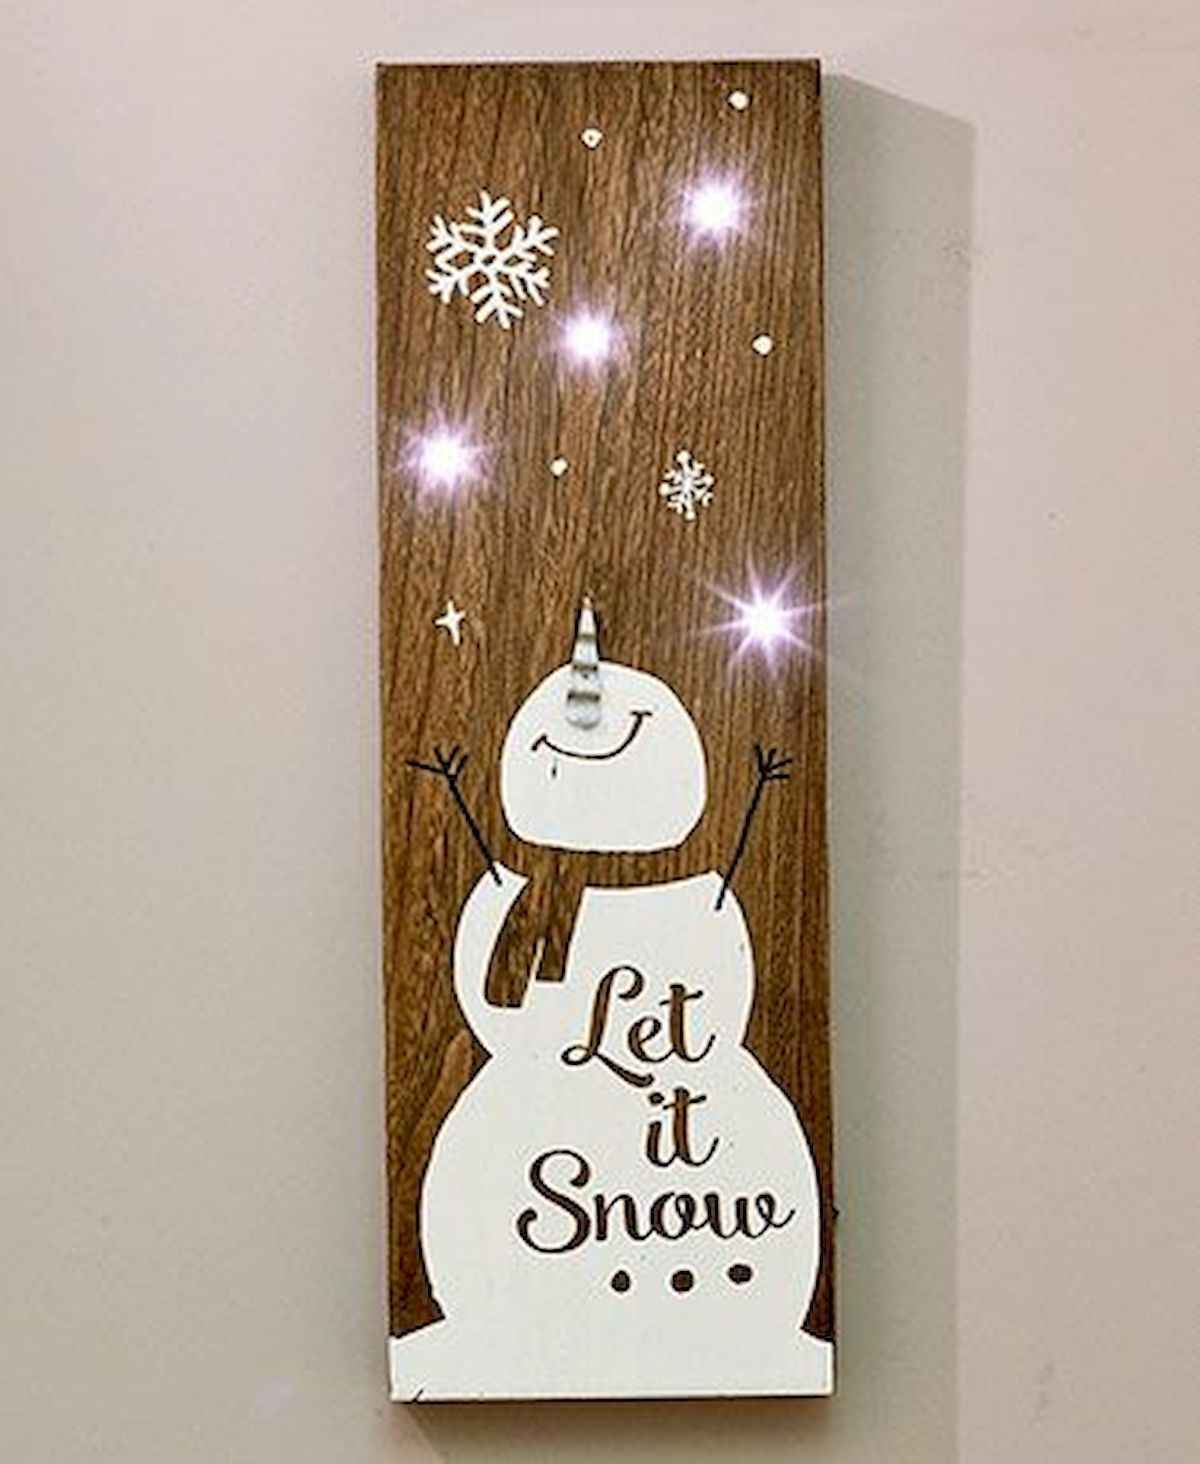 60 awesome wall art christmas ideas decorations (34)